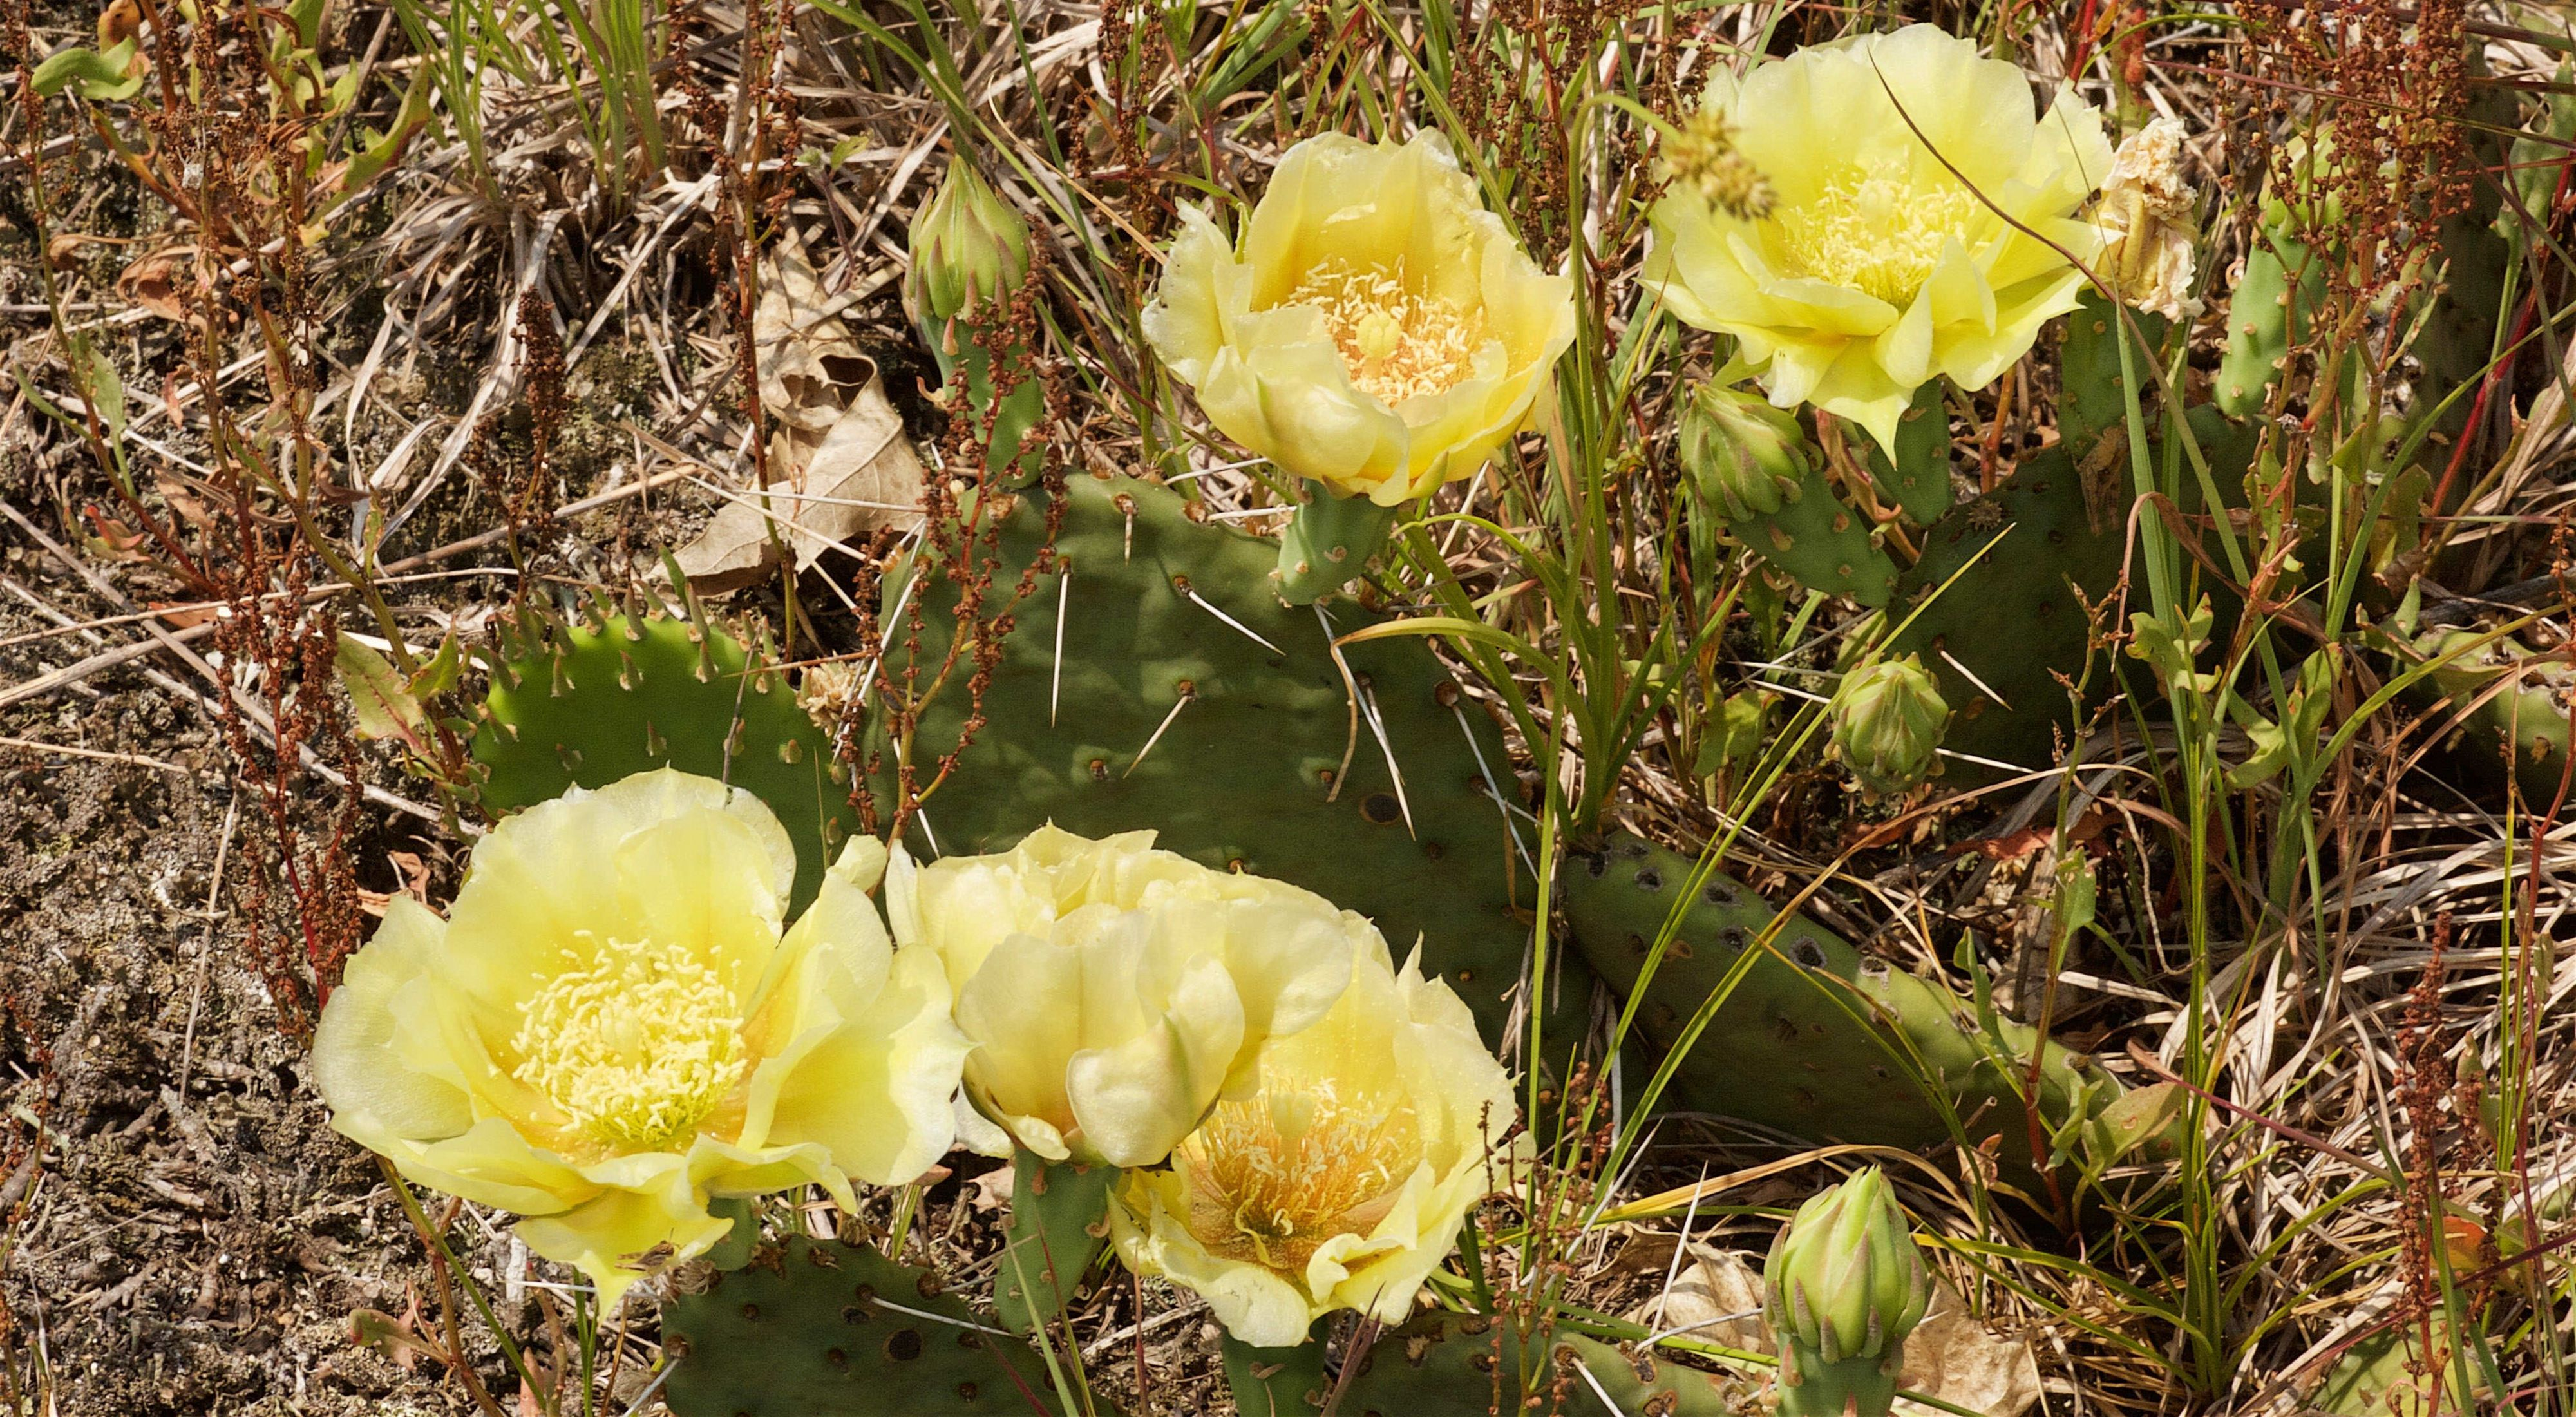 Close-up photo of two prickly pear cacti at Spring Green Prairie with their large, yellow flowers in bloom